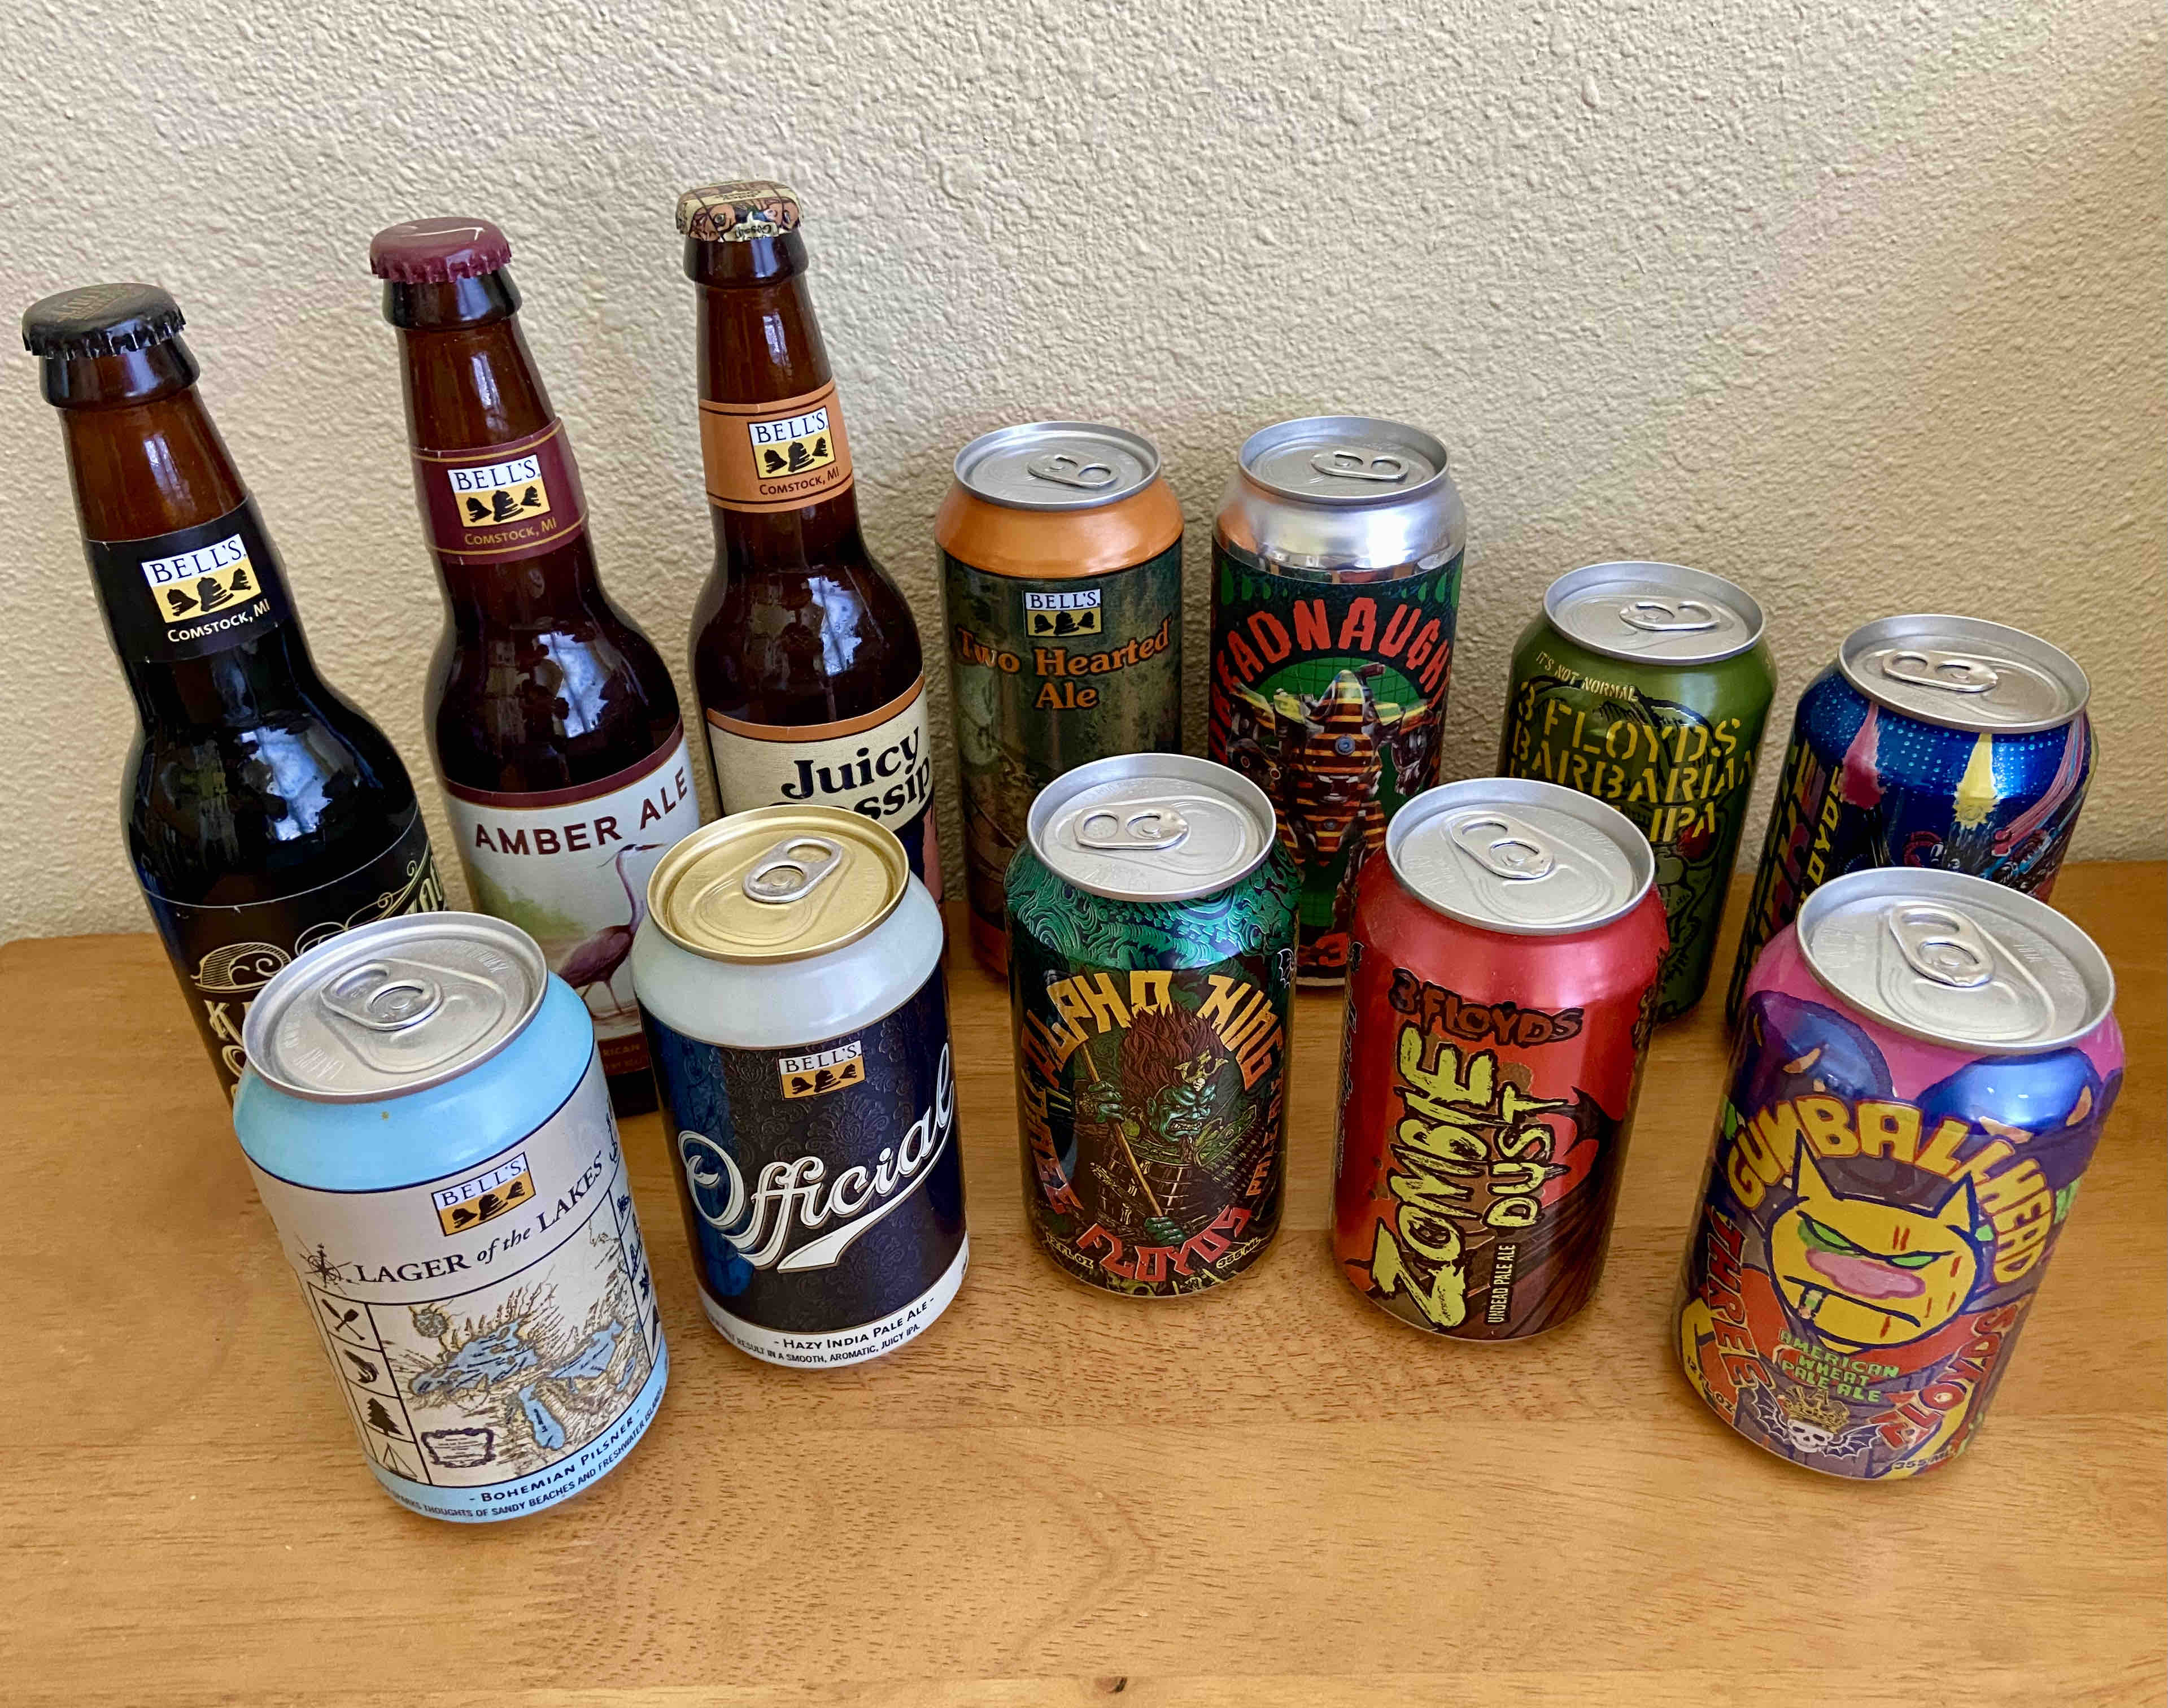 An assortment of beers from Bell's Brewery and 3 Floyds from Half Time Beverage